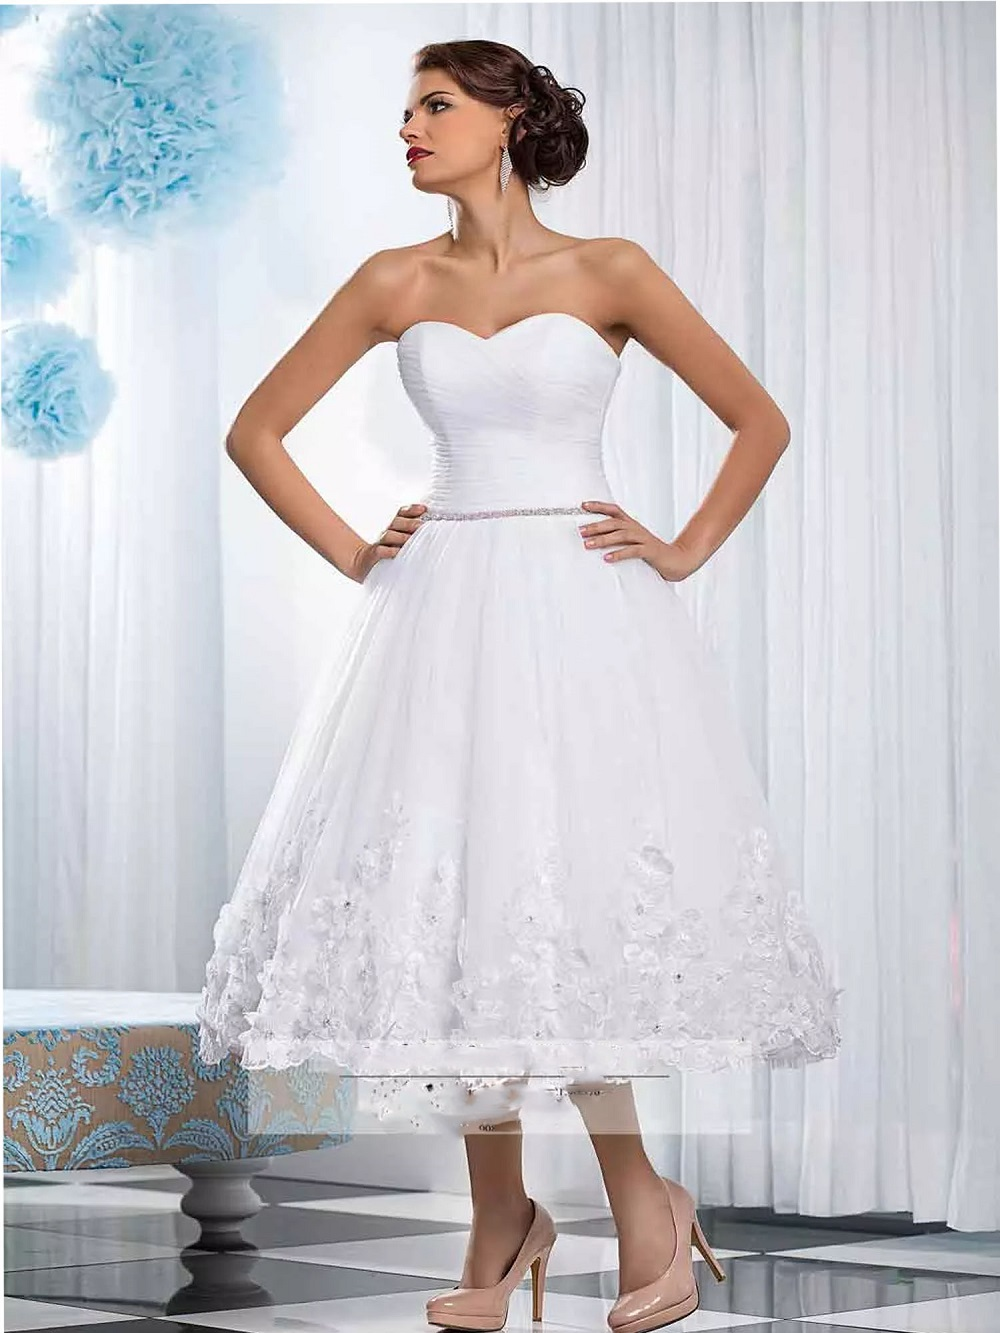 Sweetheart Lace Appliques Beaded Wedding Dresses Short Tea Length With 3D Flowers Adorned Bridal Gowns Corset Back